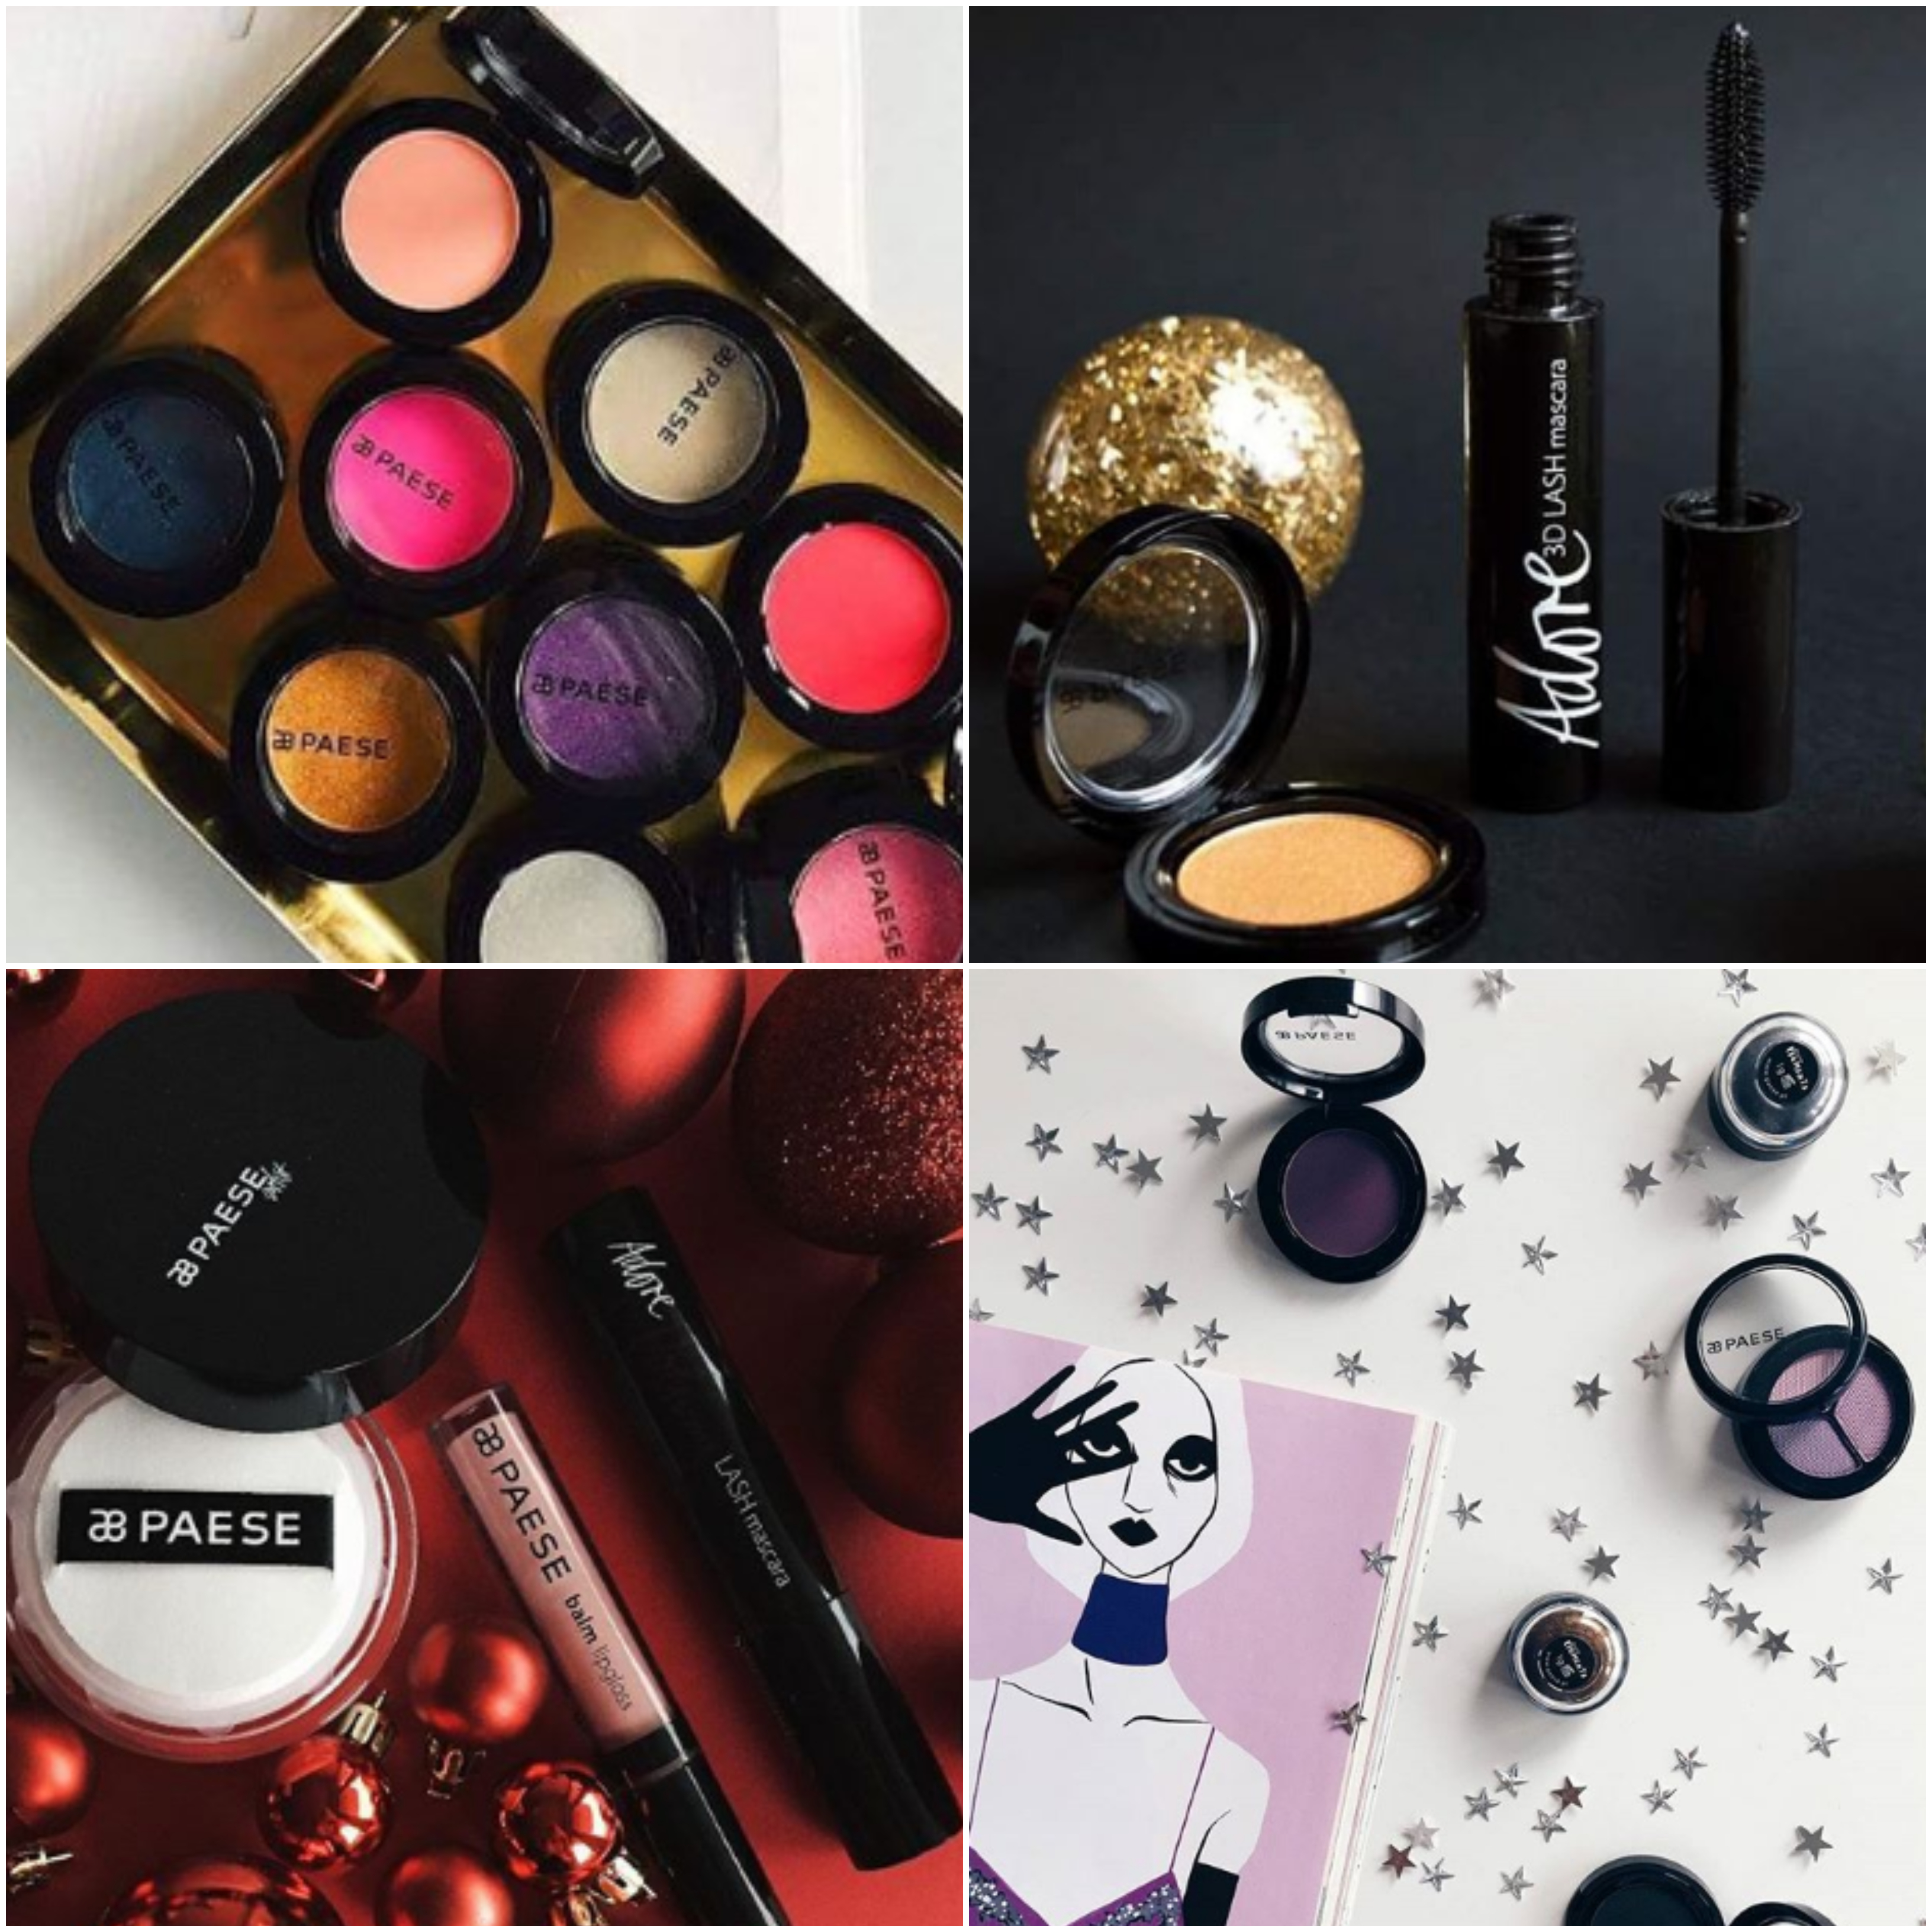 Ciceroni-beautystores-Ahmedabad-shoppingguide-lakme-AhmedabadOneMall-Victoria's Secret-Estee Lauder-Chambor-Nykaa- Iba Halal-Colorbar-Maybelline NewYork- L'Oréal Paris-Faces-Lotus-Biotique-The Perfume Shop-Bobbi Brown-Shoppers Stop-Westside-Lifestyle-Pantaloons-cosmeticstores-MYMY-beautyessentials-PaeseCosmetics